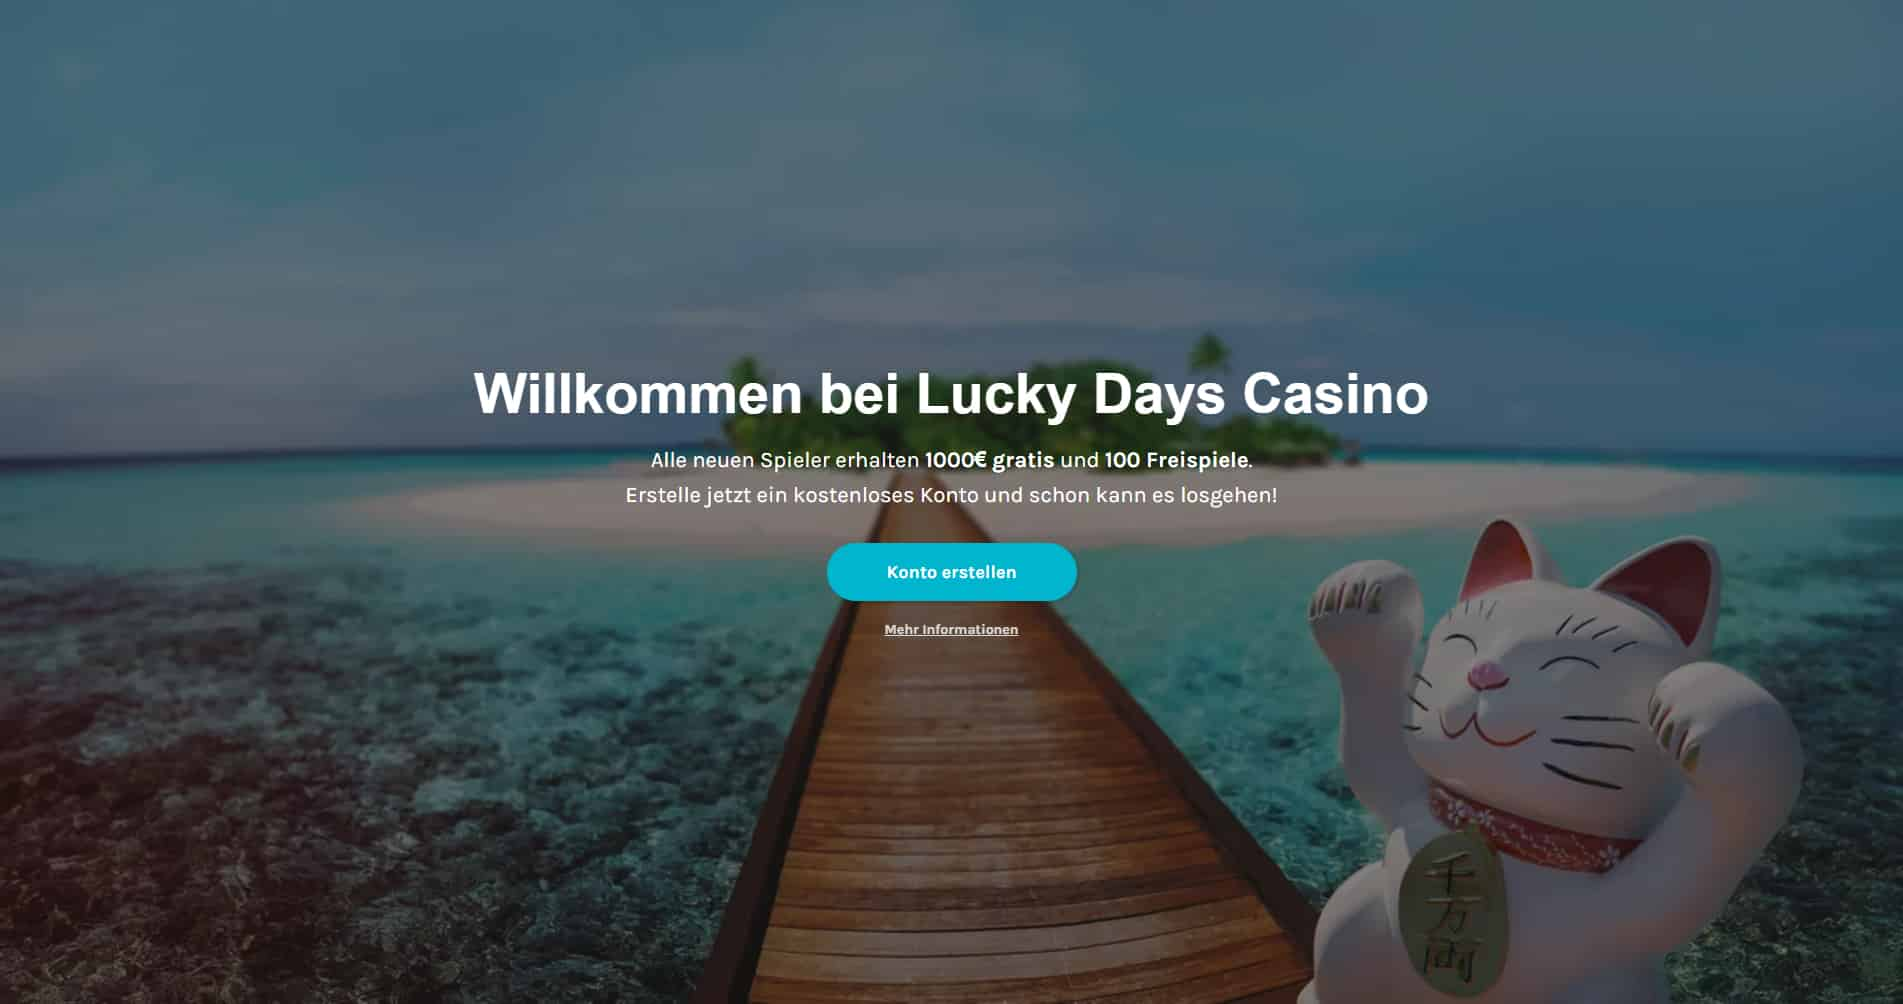 Lucky Days Casino Content Images - Germany CasinoTop